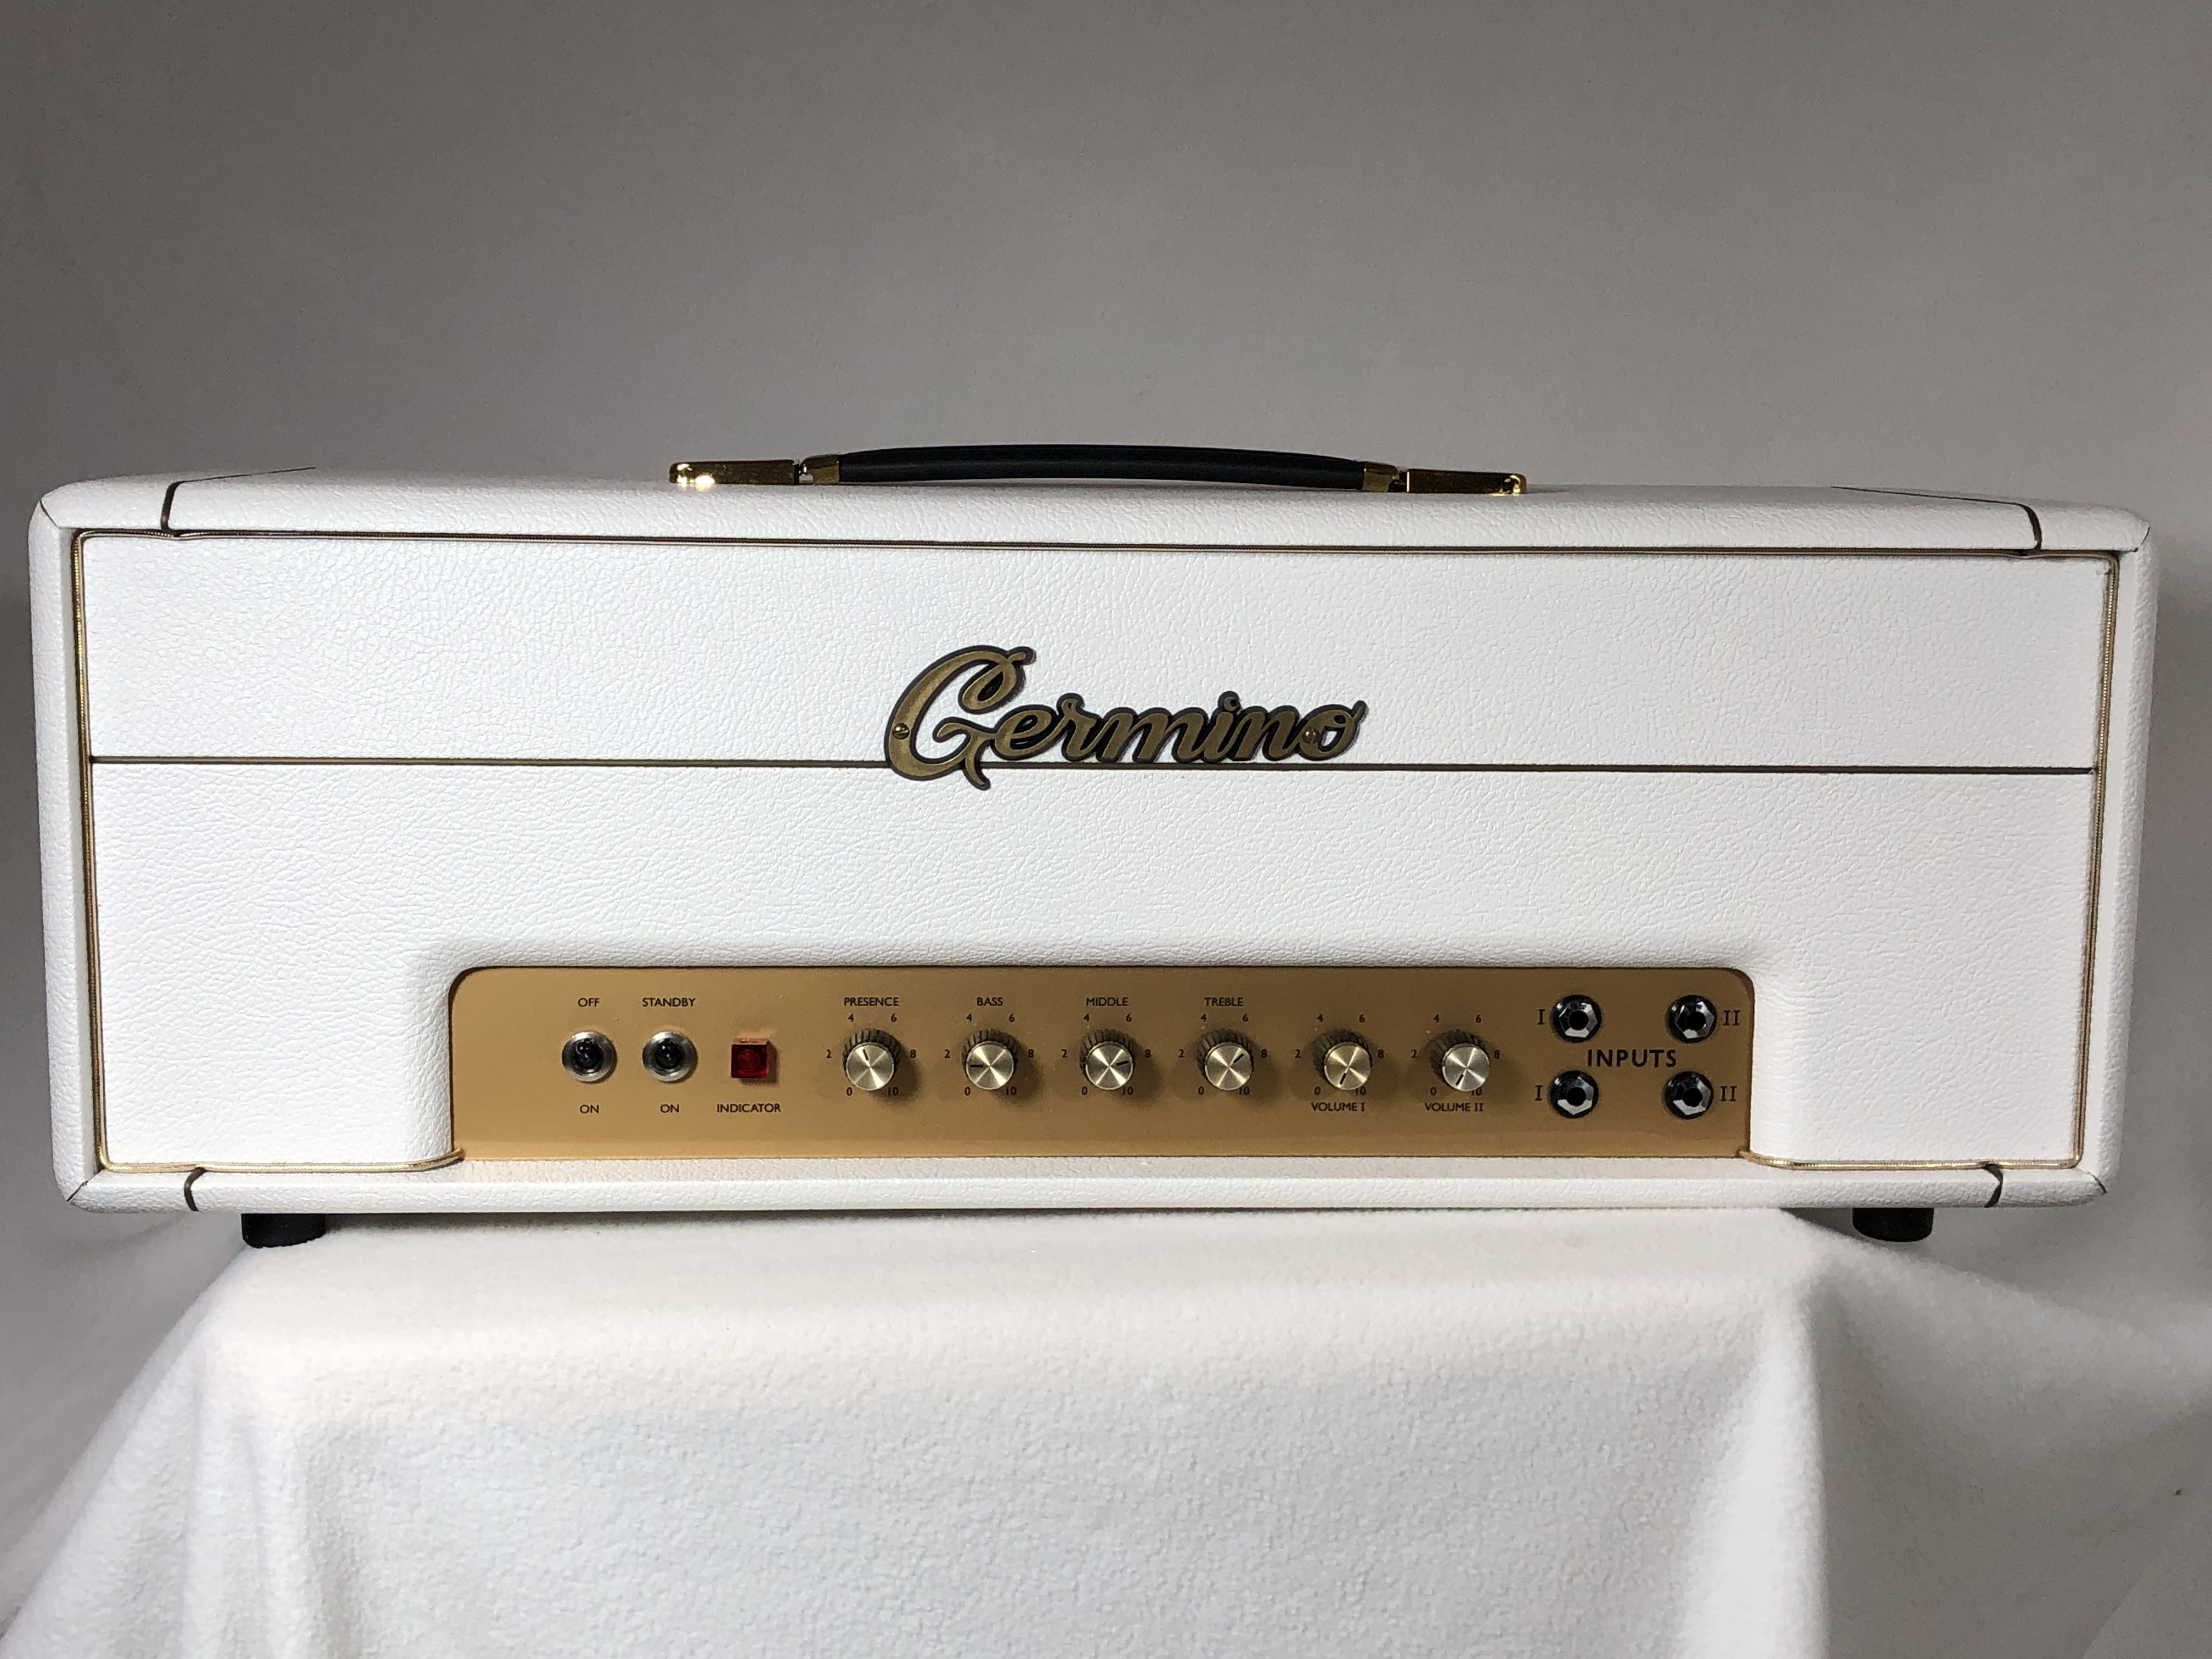 Germino Club 40 w Master Vol & SS/Tube Rectifier Option